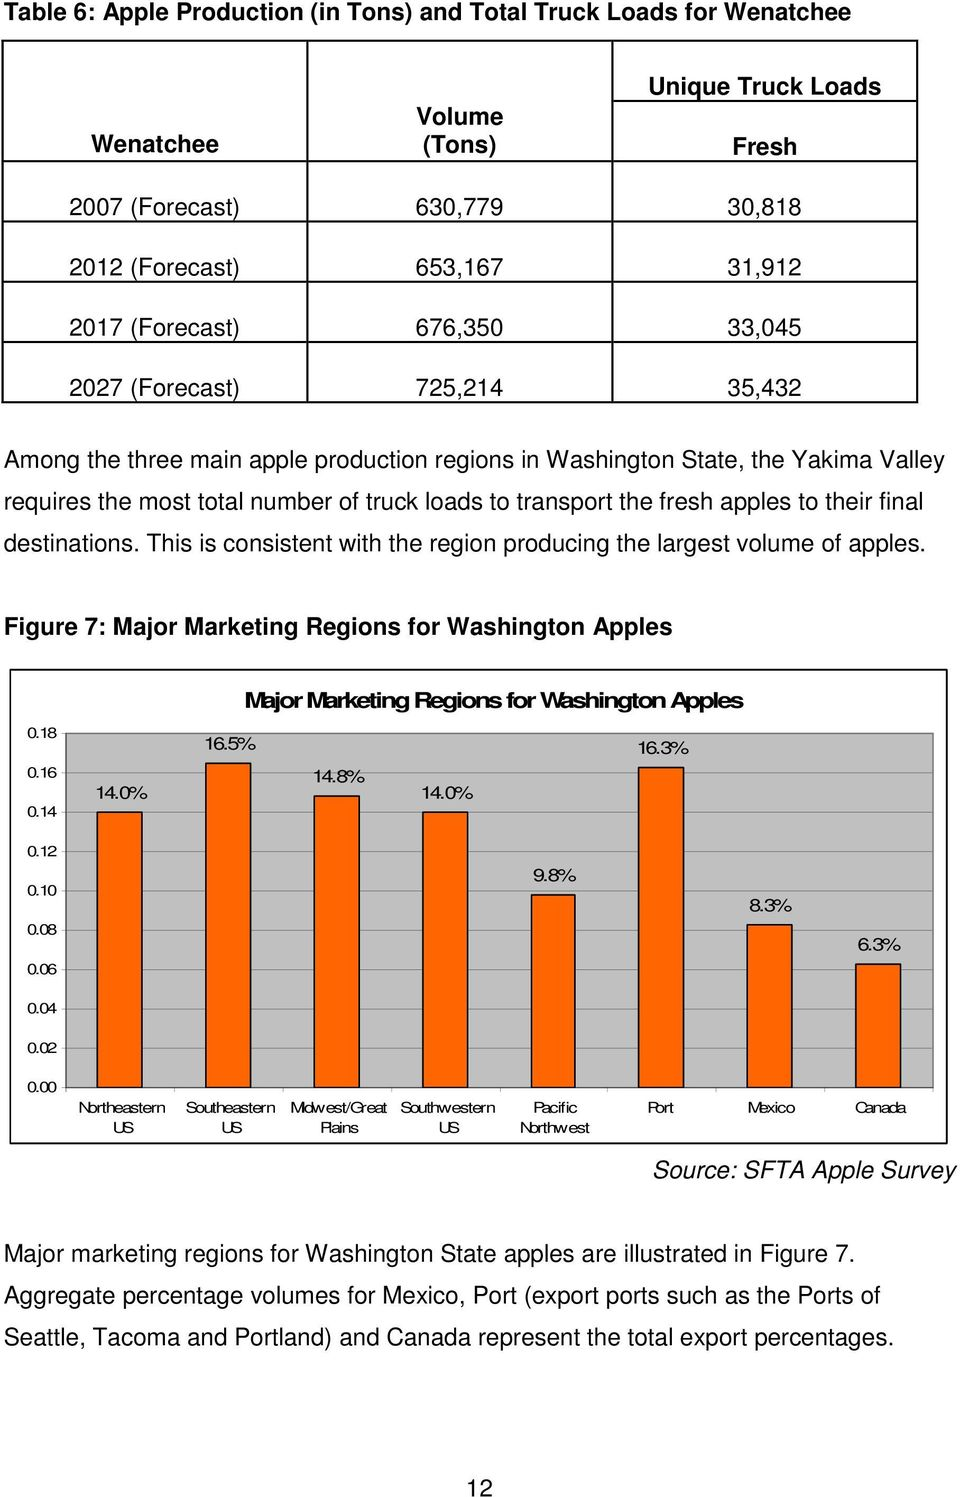 apples to their final destinations. This is consistent with the region producing the largest volume of apples. Figure 7: Major Marketing Regions for Washington Apples 0.18 0.16 0.14 14.